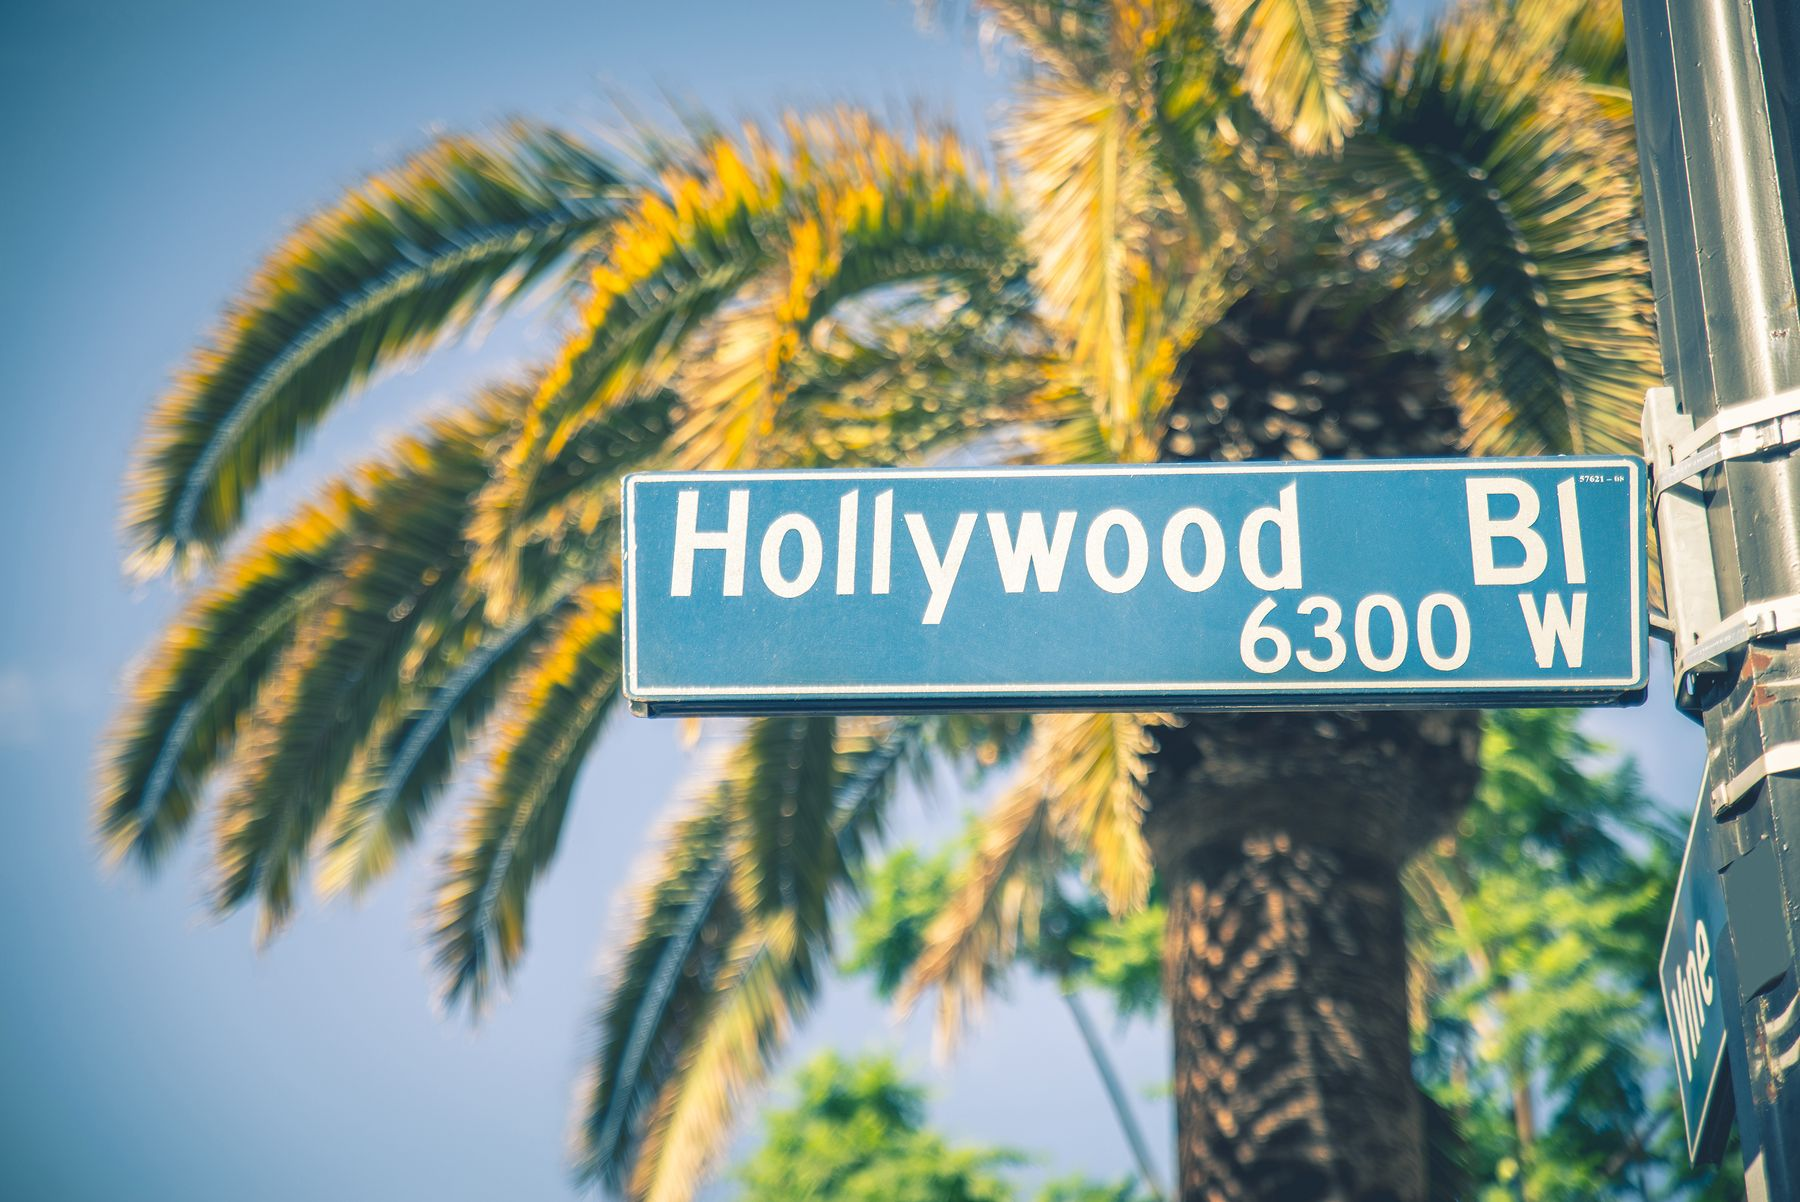 Hollywood street sign where travel movie takes place